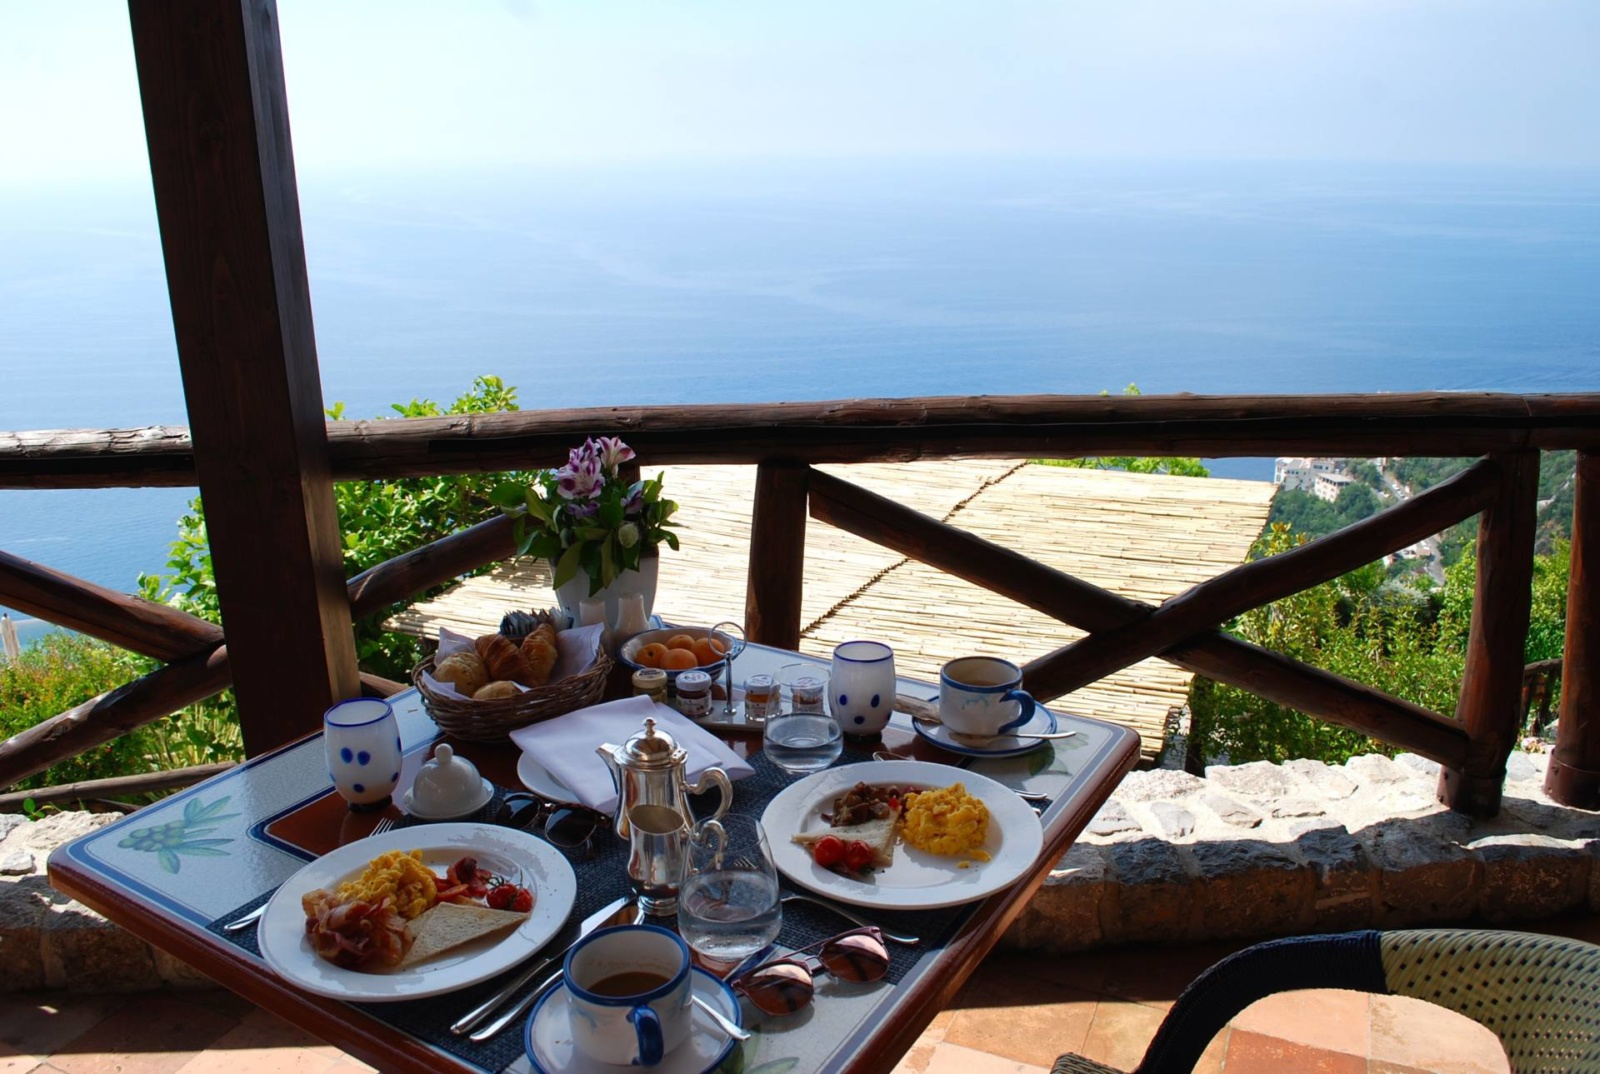 monastero-santa-rosa-amalfi-review-breakfast